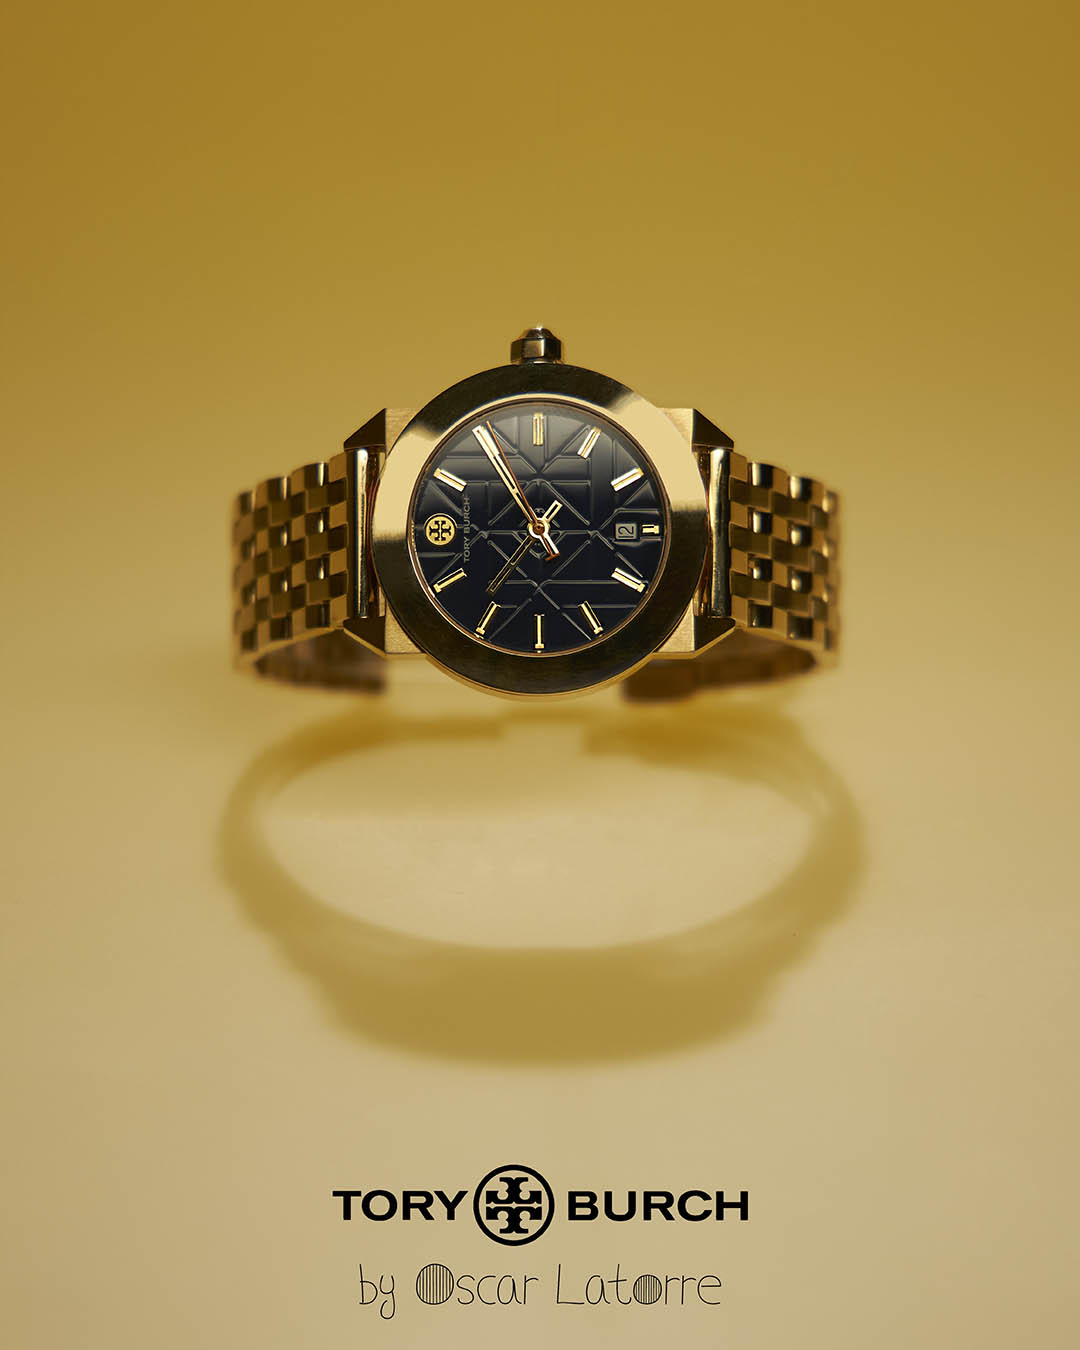 Tory Burch by Oscar Latorre